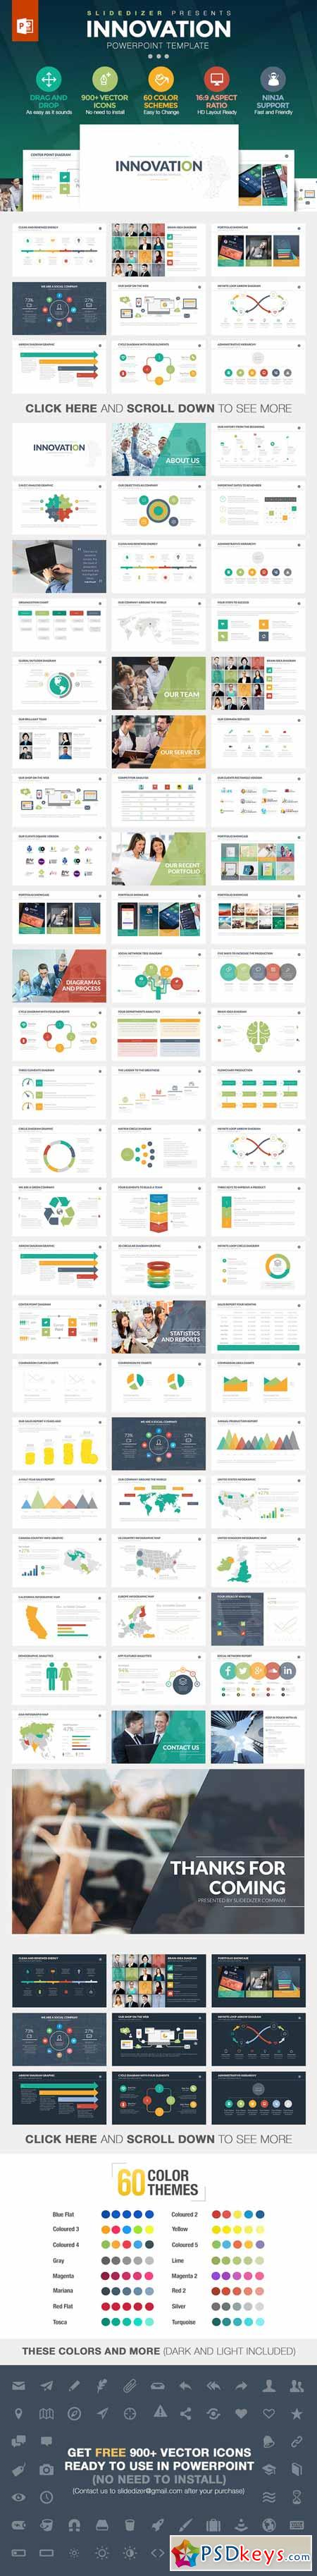 Innovation powerpoint template 291891 free download photoshop innovation powerpoint template 291891 toneelgroepblik Image collections